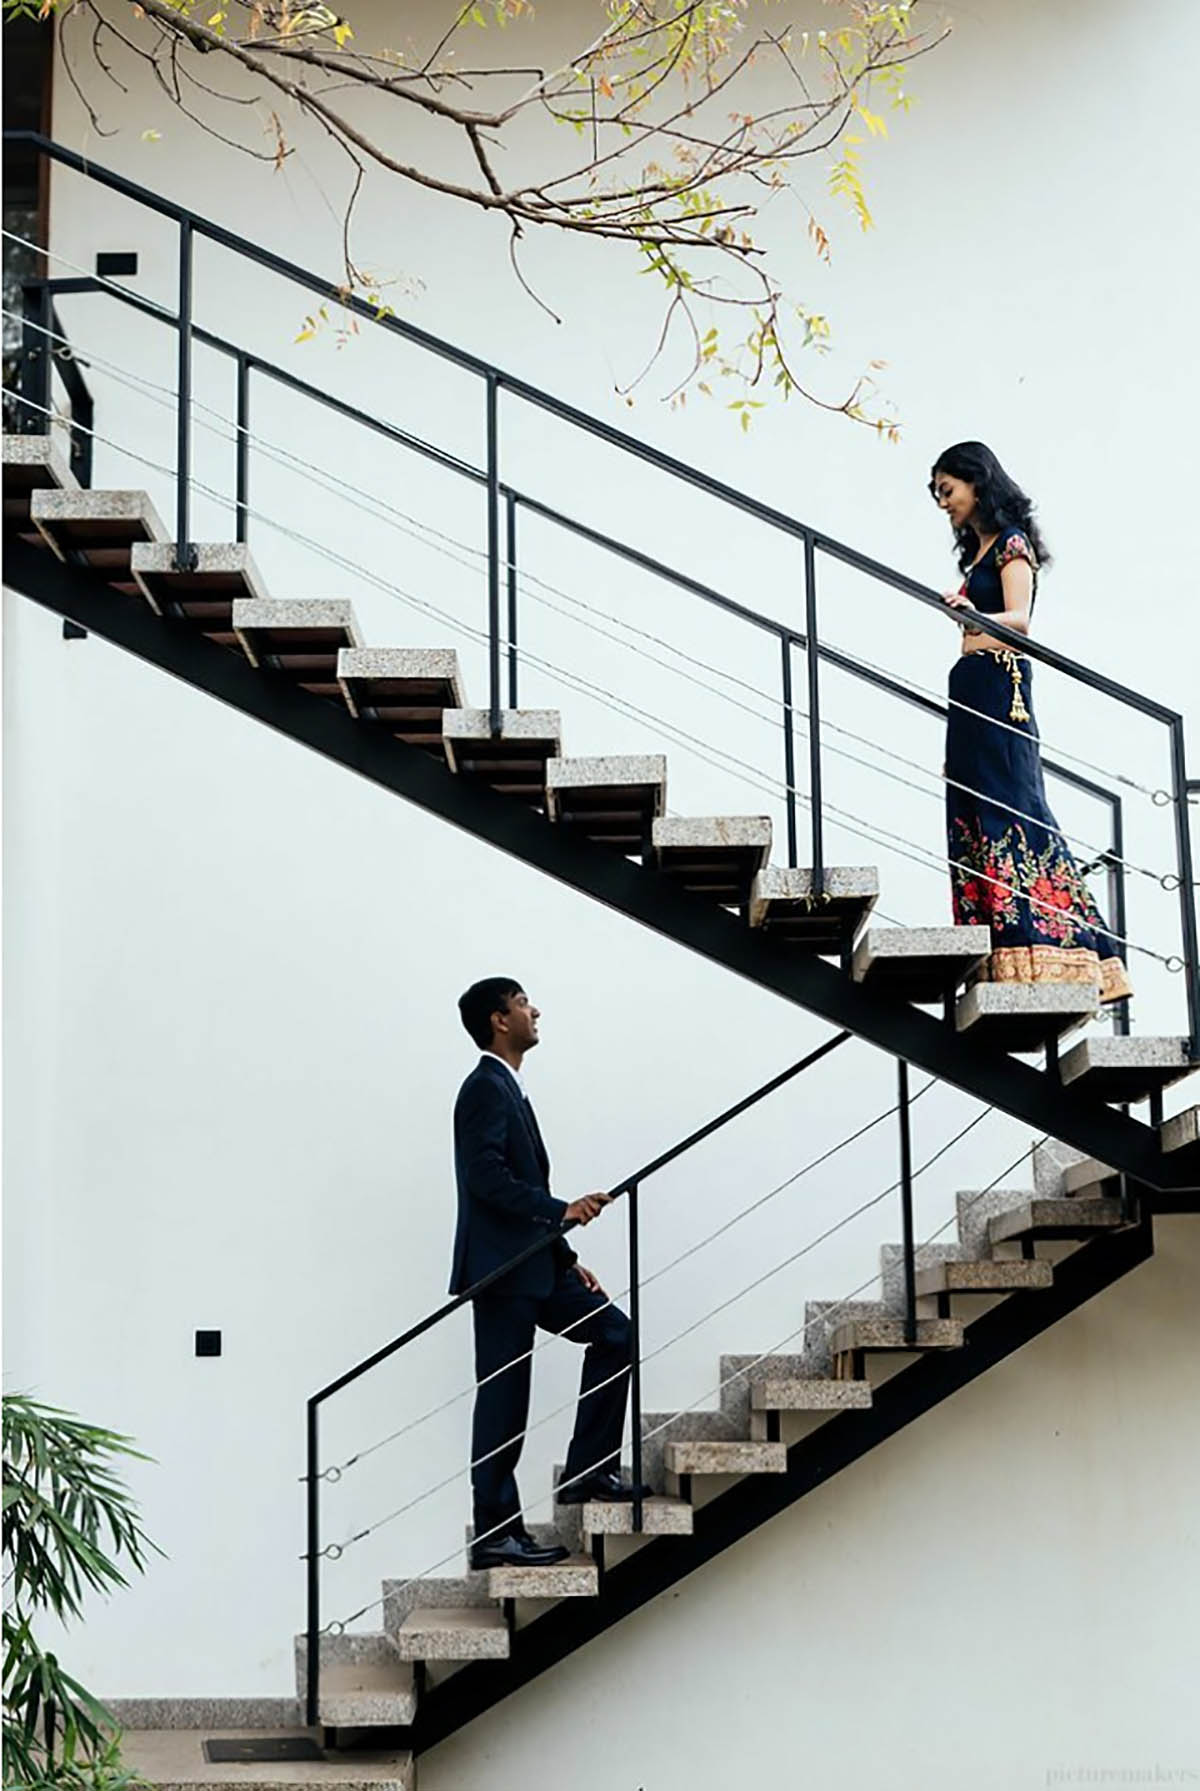 Best Pre Wedding Planners in Bangalore | Pre Wedding Planners Bangalore